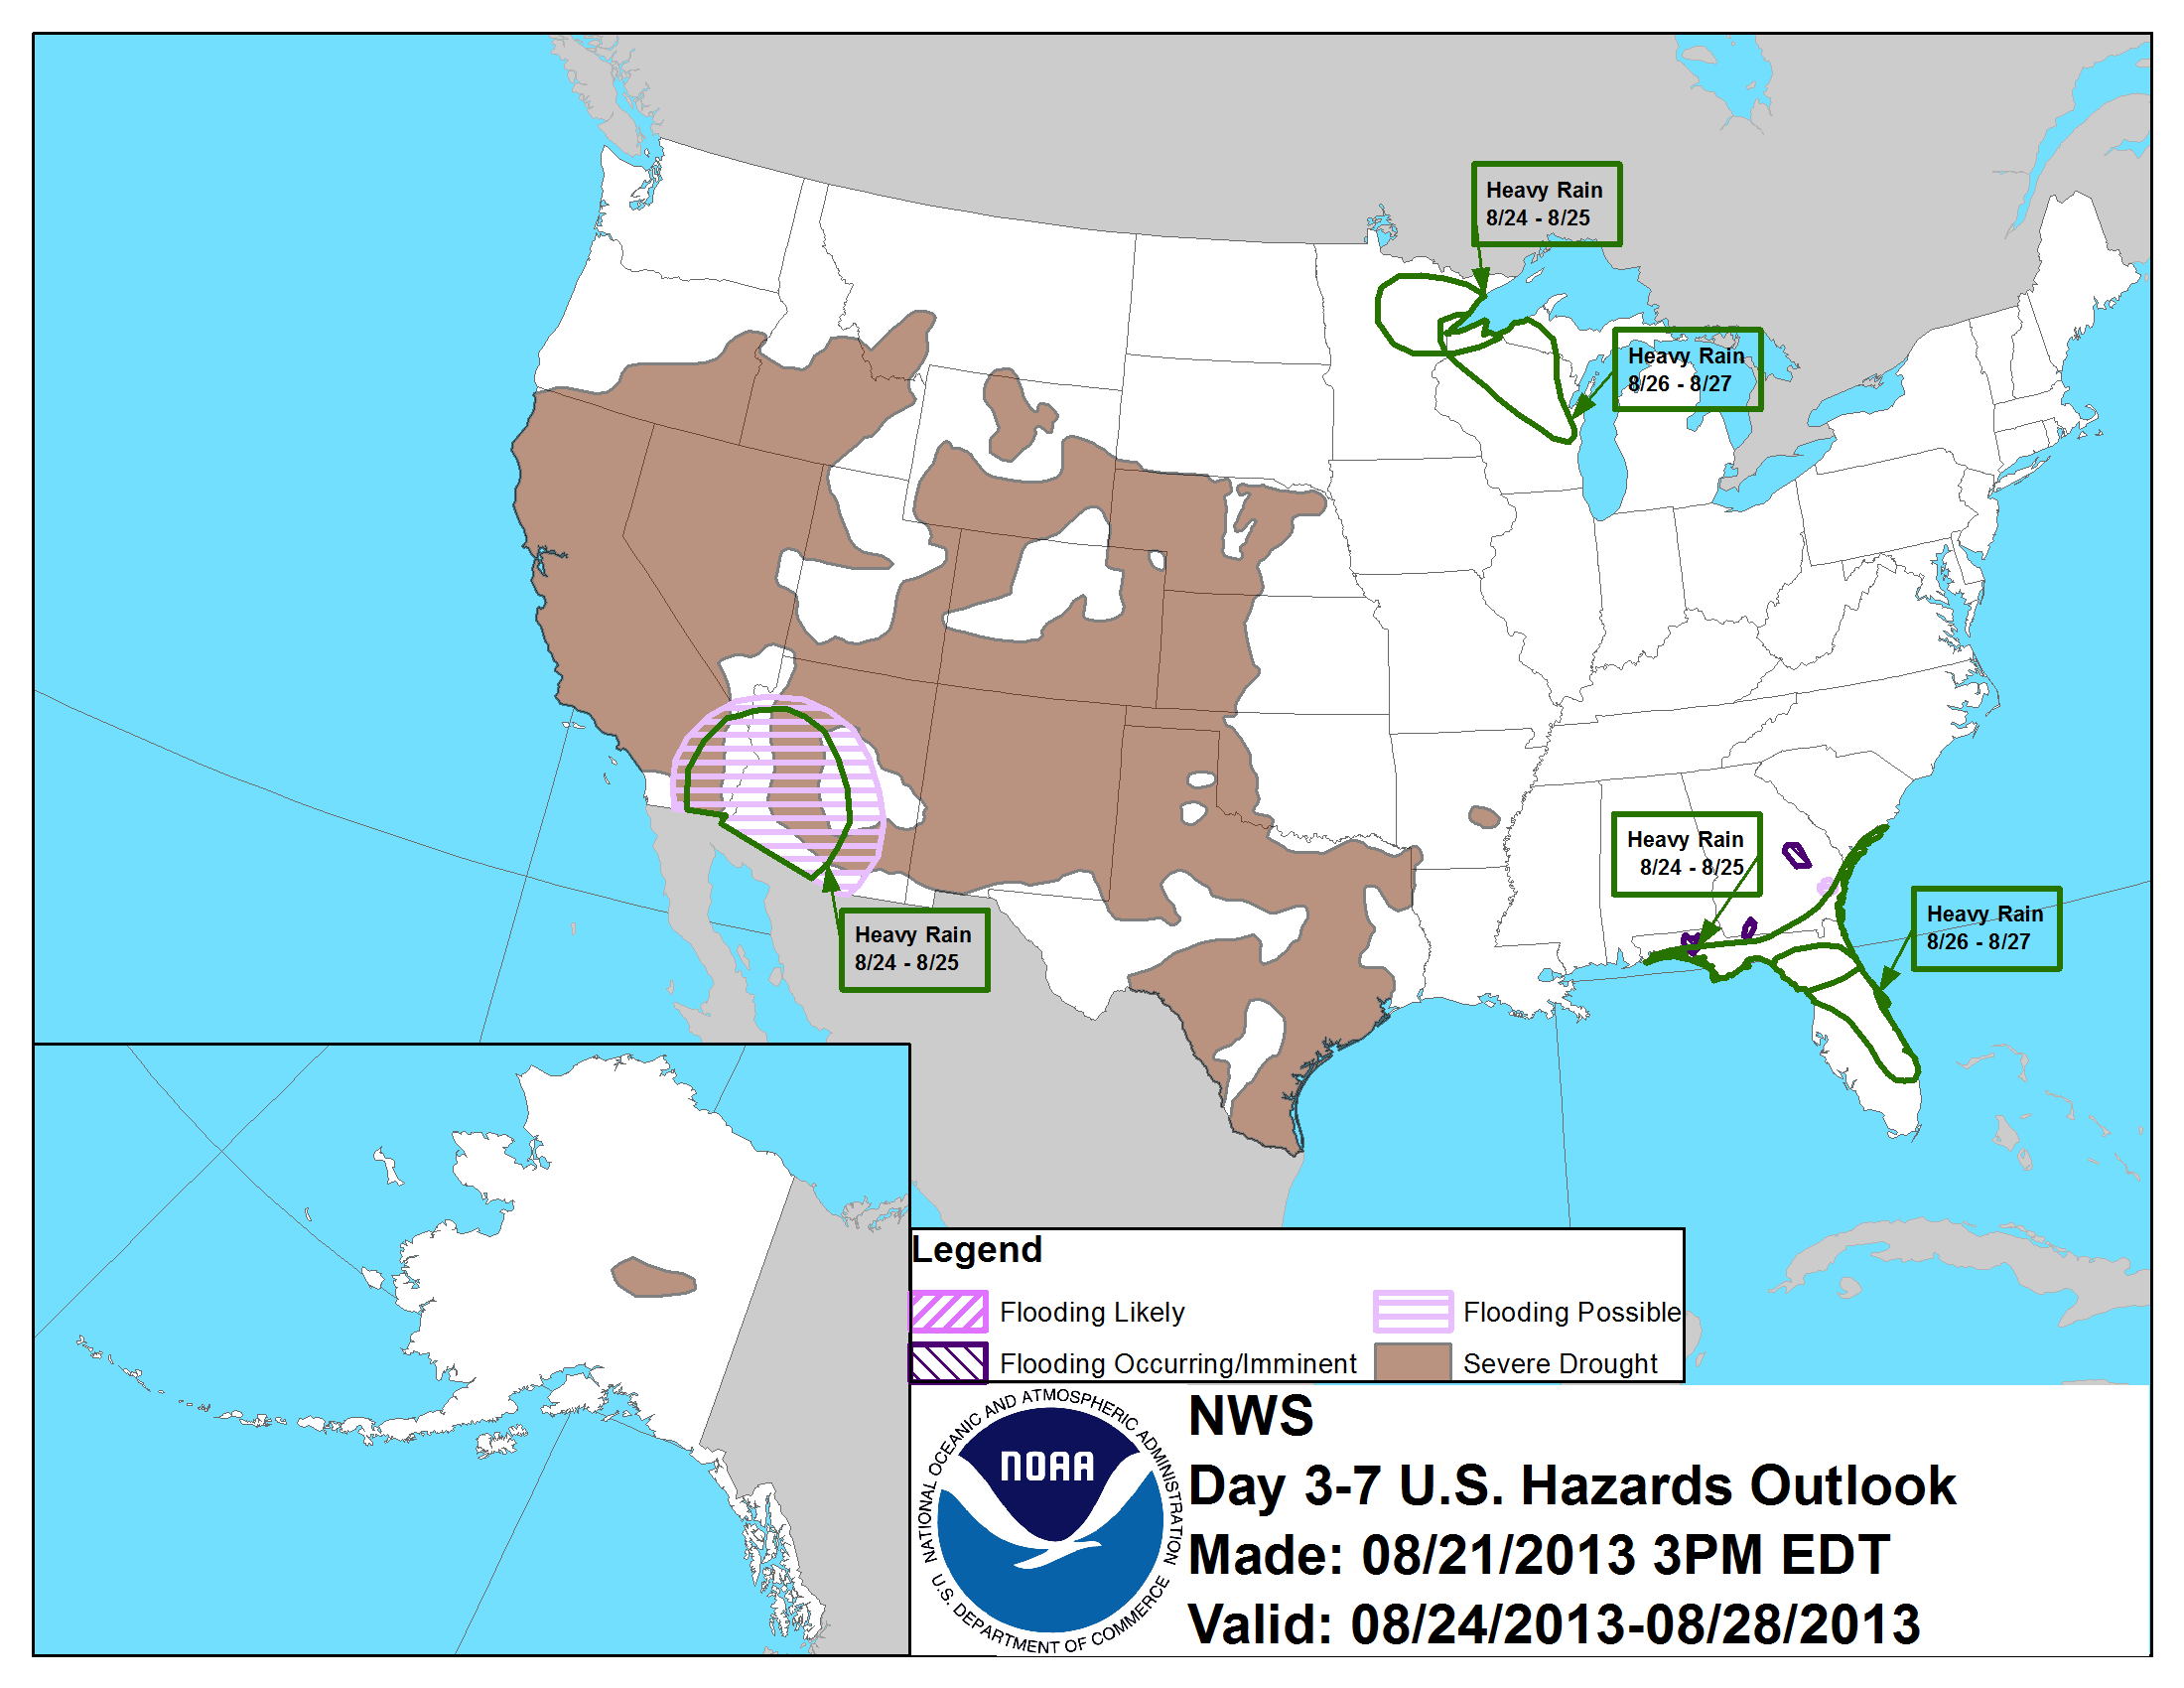 3-7 day hazards outlook from the Climate Prediction Center.